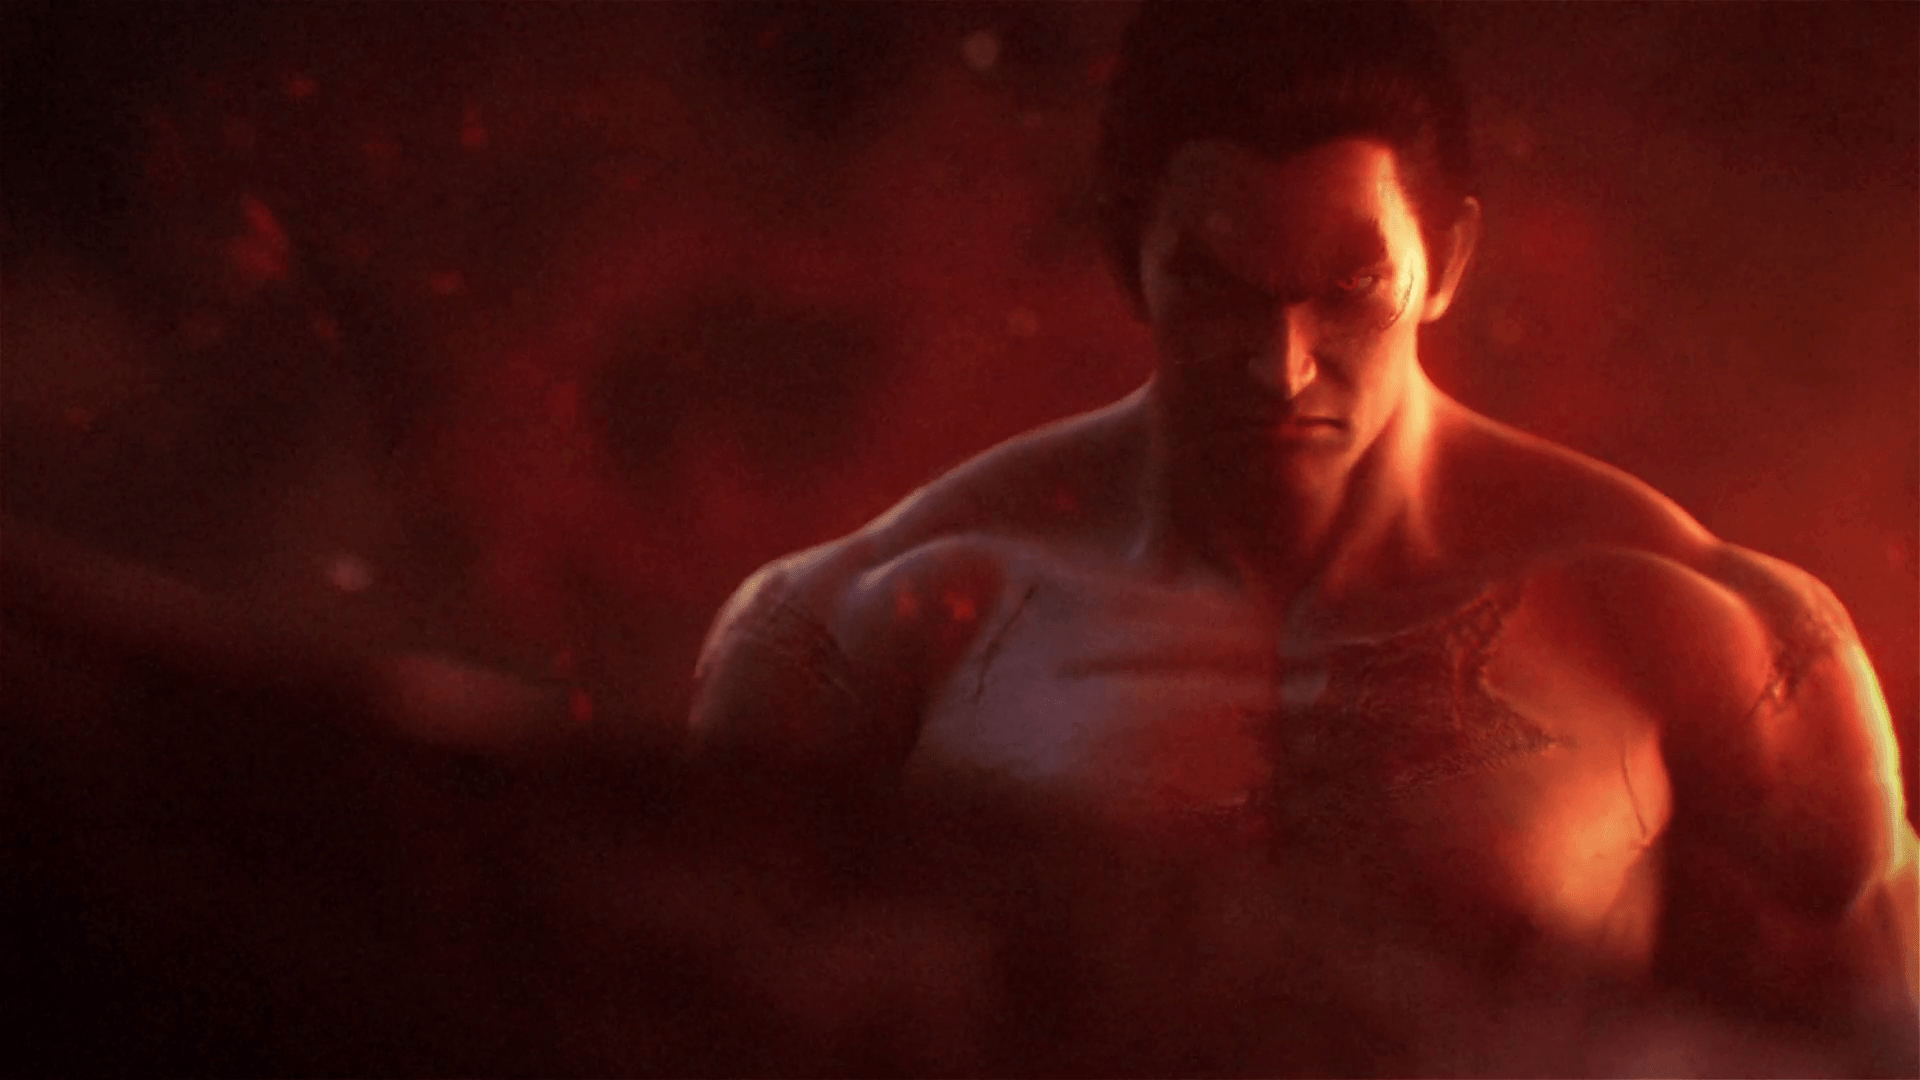 WallpaperMISC - Heihachi Mishima Tekken HD Wallpapers Free TOP High ...